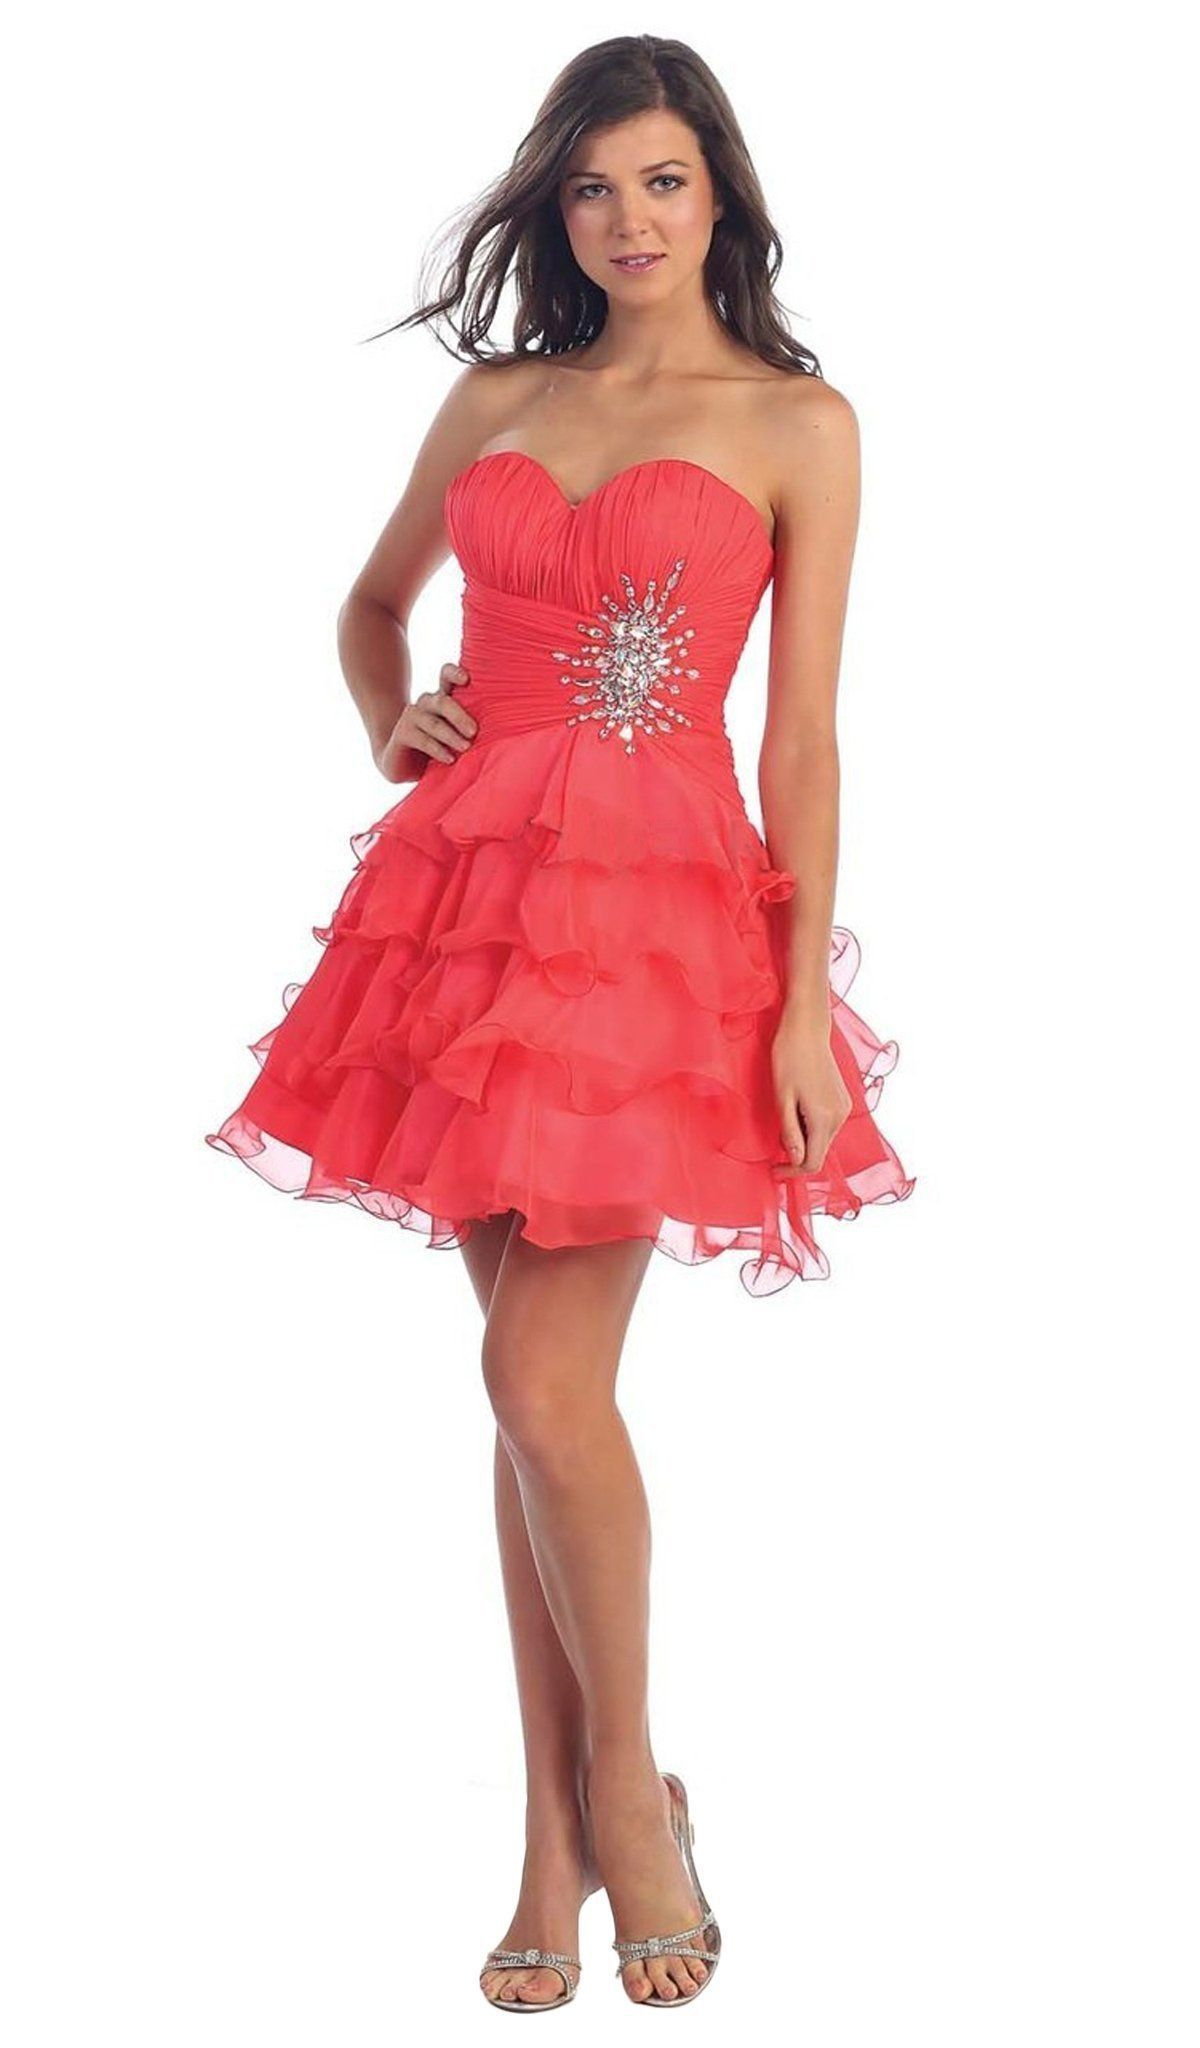 May Queen - Strapless Ruched Prom Dress with Ruffle Skirt ...